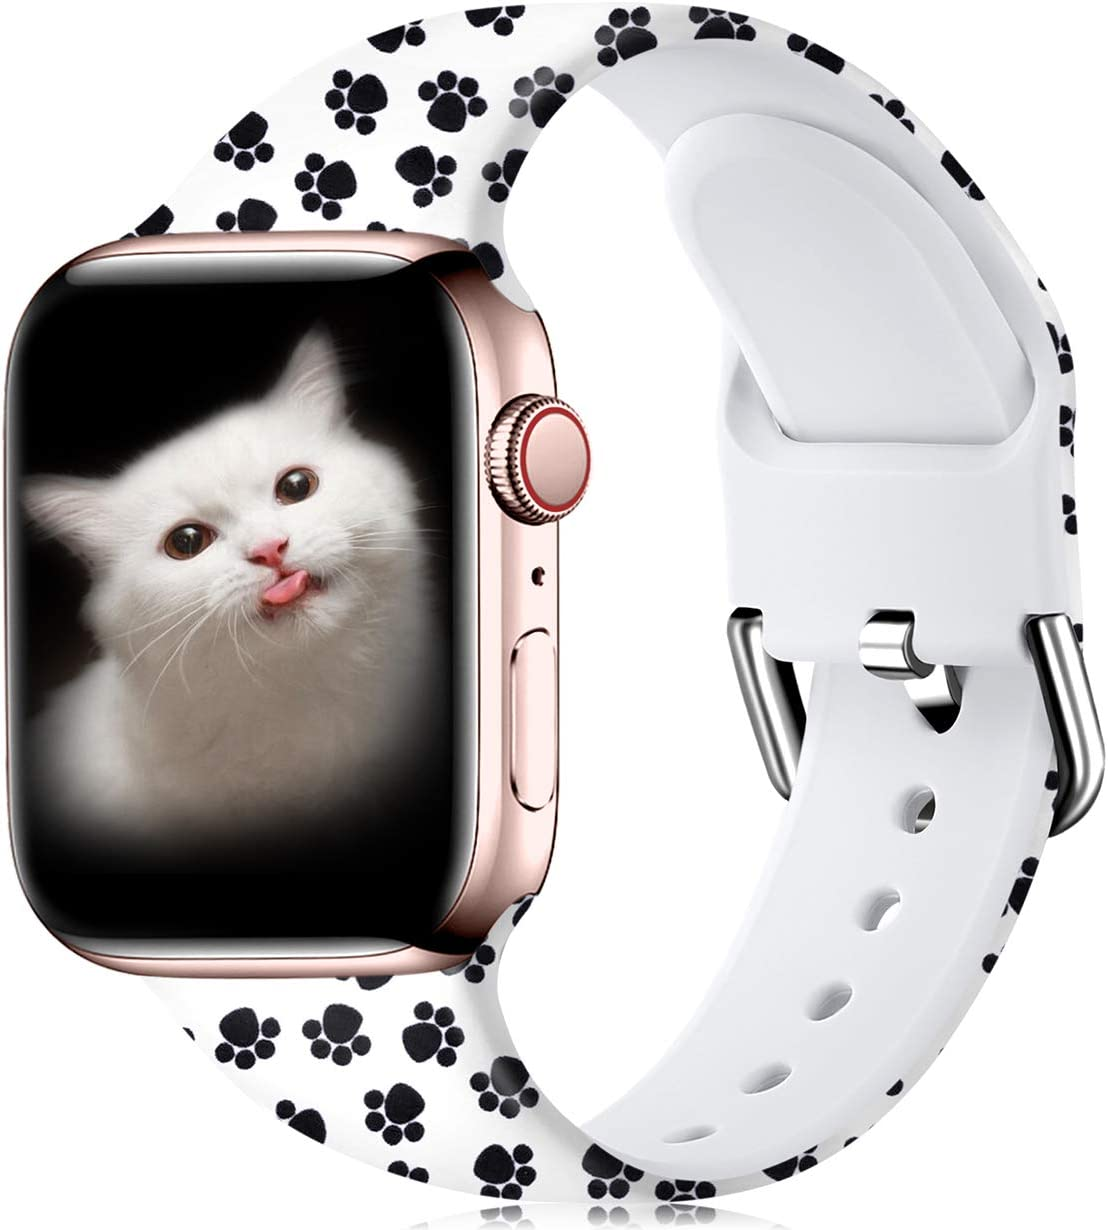 Wepro Compatible with Apple Watch Band 42mm 44mm iWatch SE & Series 6, Series 3, Series 5 4 2 1 for Women, Fadeless Floral Pattern Printed Silicone Wrist Bands Replacement, Paw, S/M